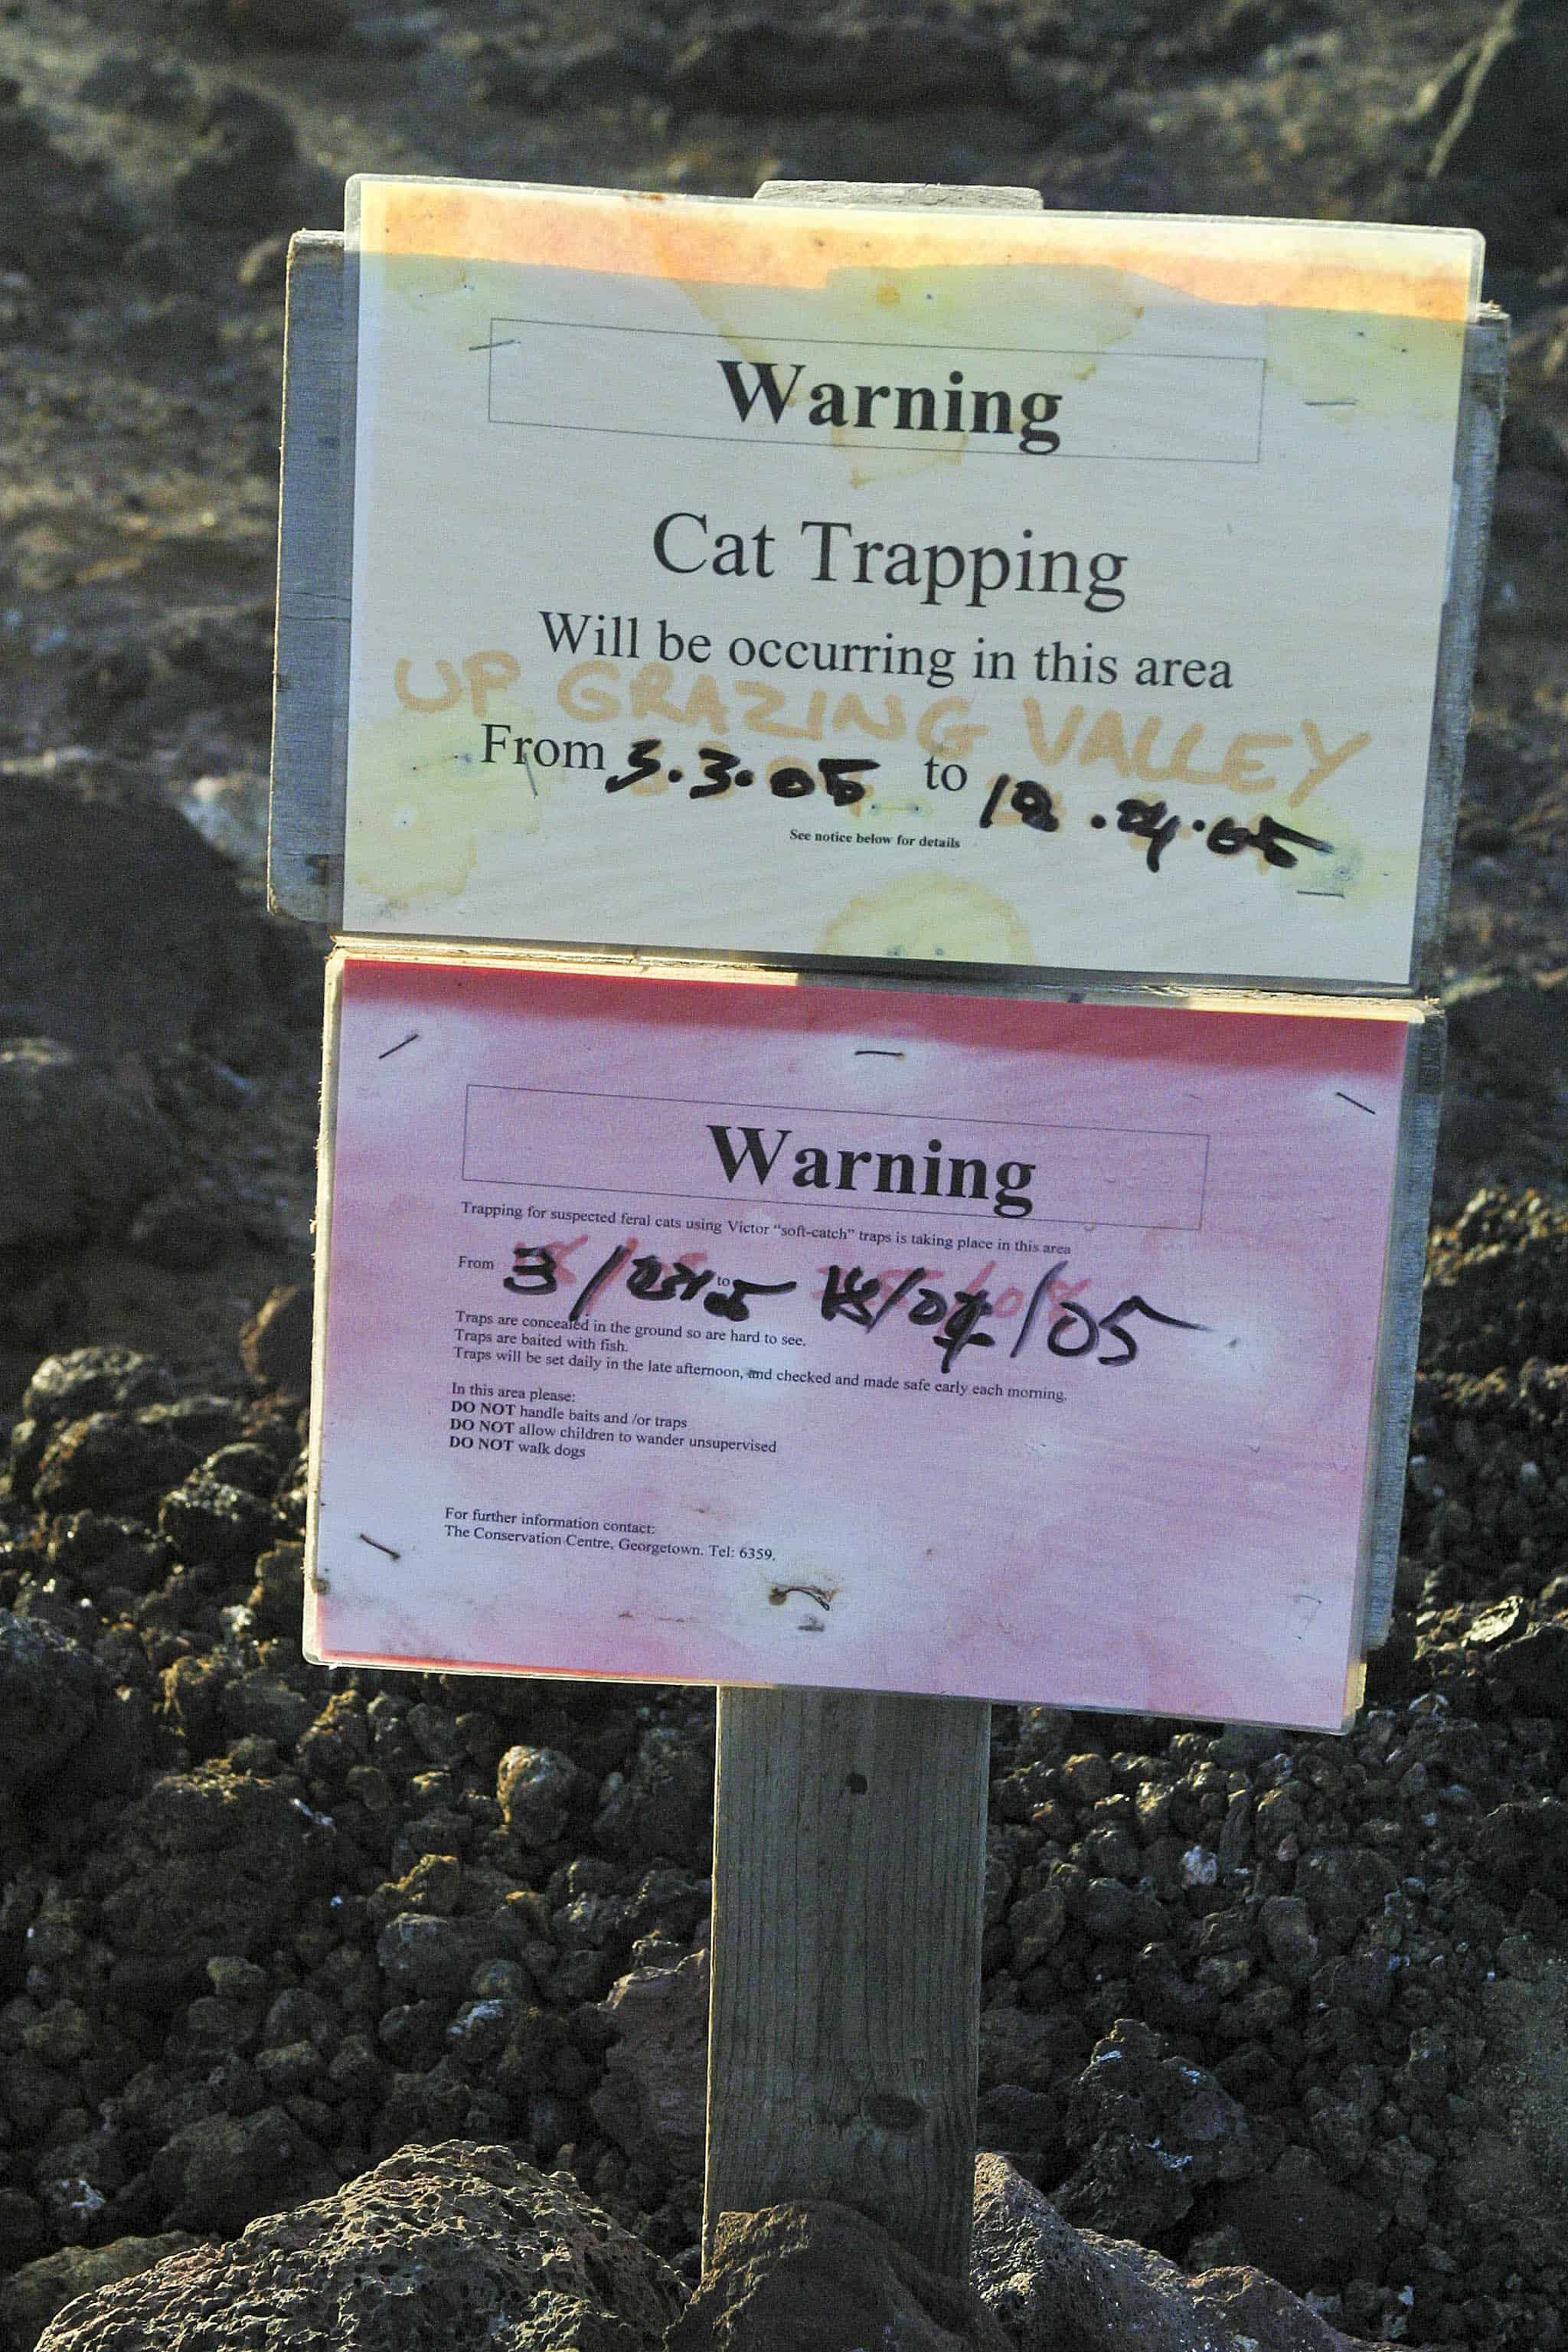 ign to inform public about planned trapping of feral cats on Ascension; Copyright: Dr Mike Pienkowski